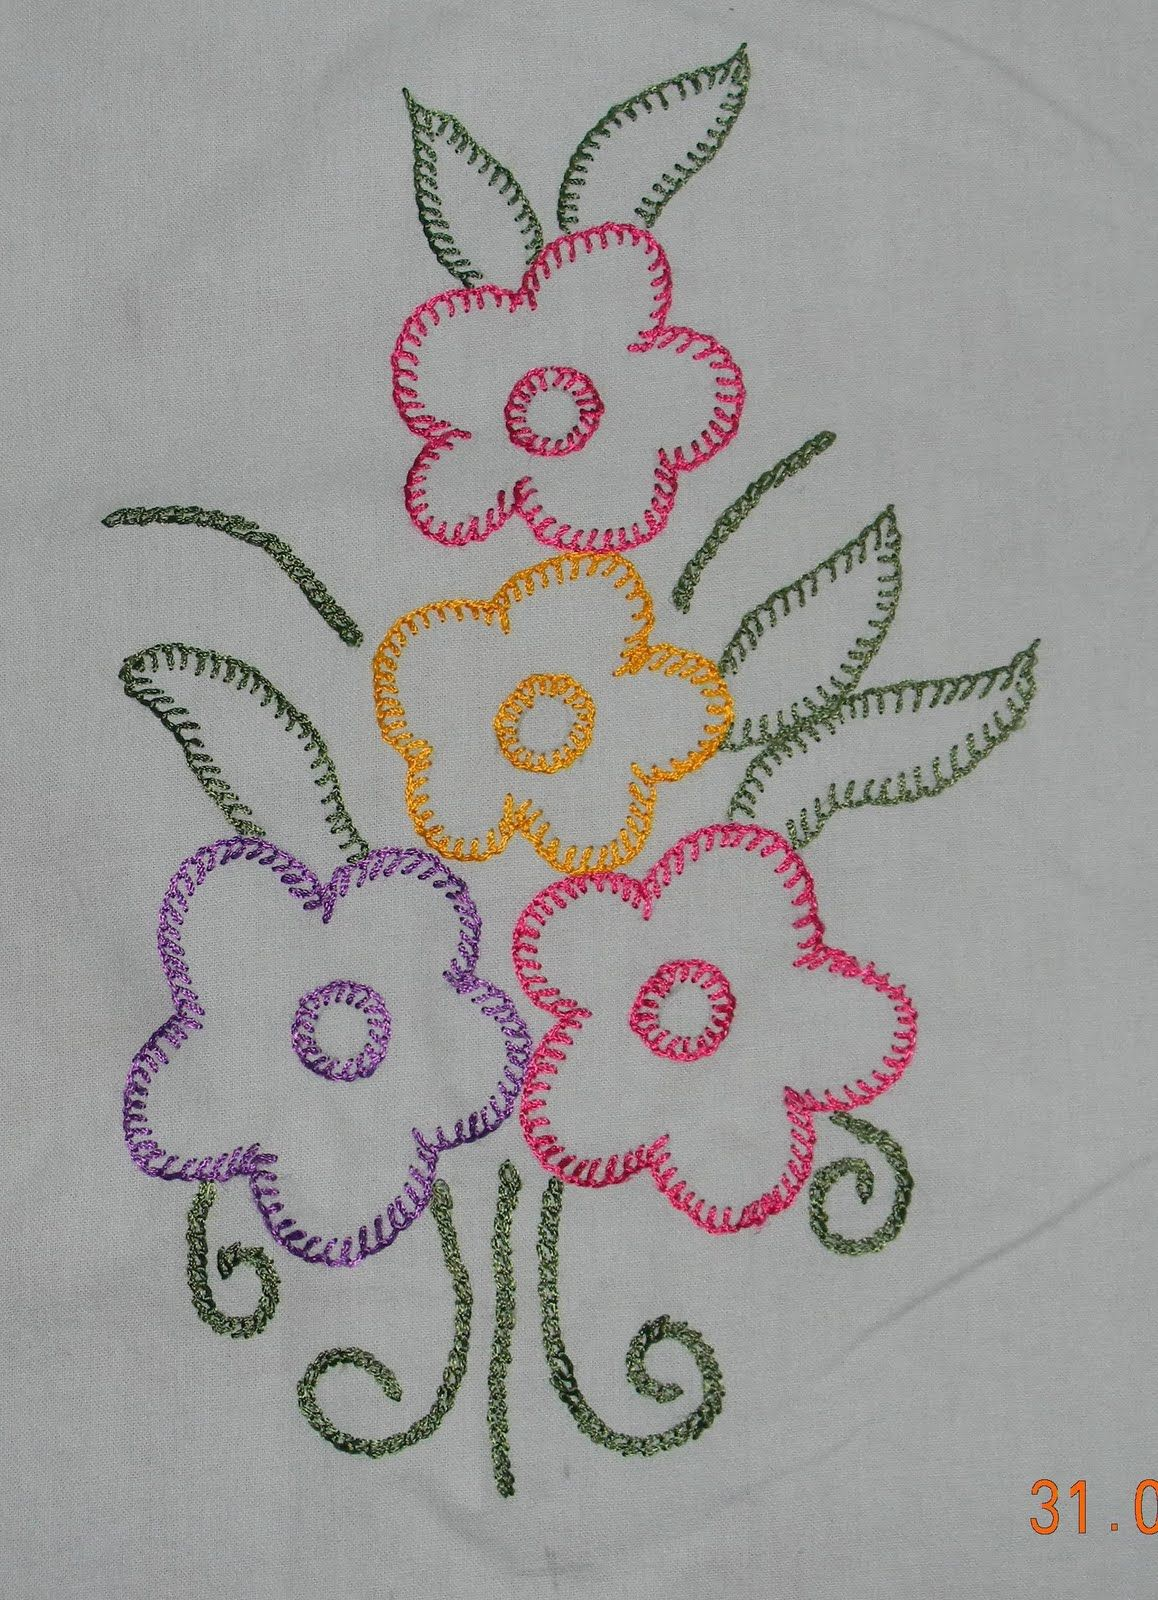 Bed sheet designs hand embroidery - Hand Embroidery Stitches Stitch Pattern Of Hand Embroidery And Open Chain Stitch